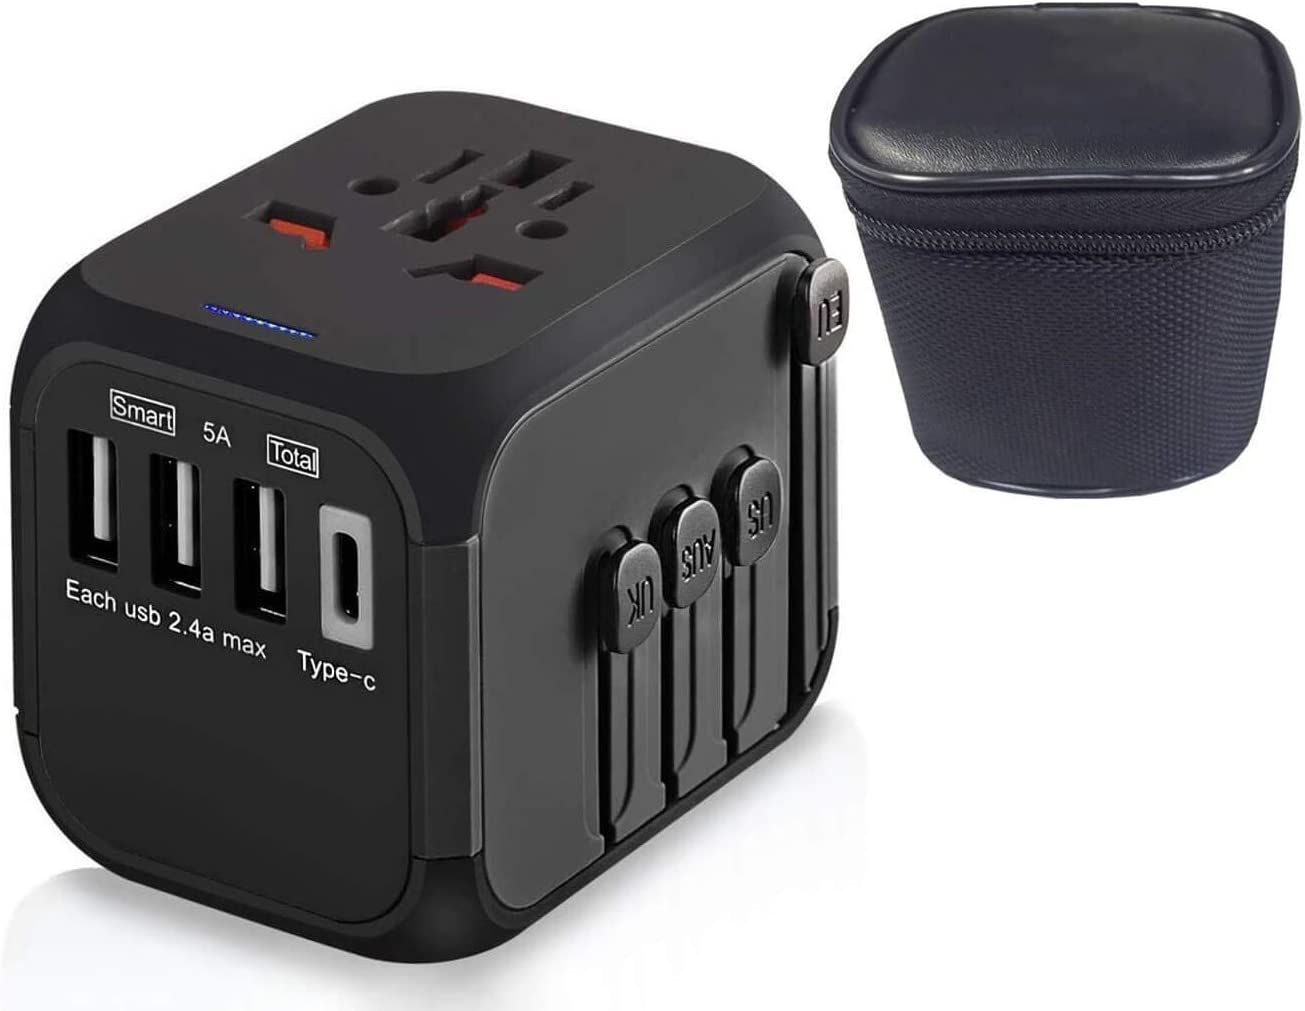 Goaycer Universal Travel Adapter: Worldwide All in One International Power Plug Adaptor with 5A High Speed USB Type C Charger Socket for UK EU USA AU Italy European